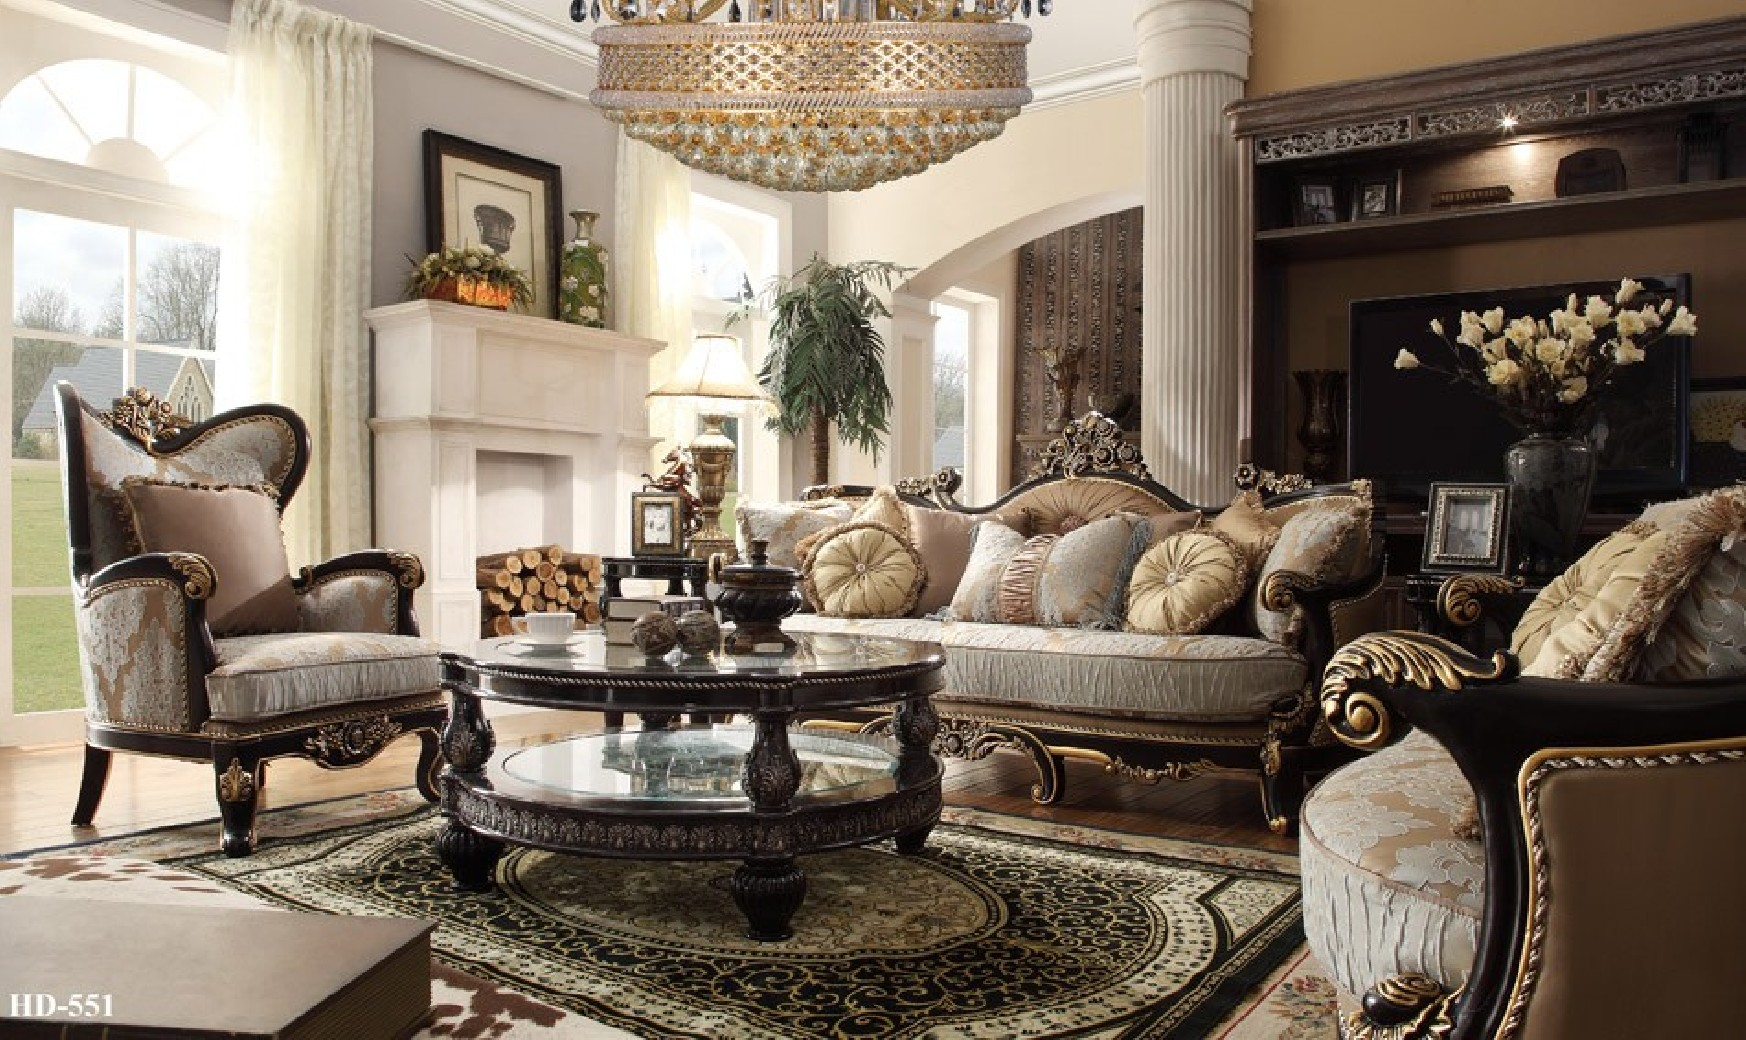 Homey Design Upholstery Living Room Set Victorian European in 10 Genius Tricks of How to Upgrade Upholstered Living Room Sets